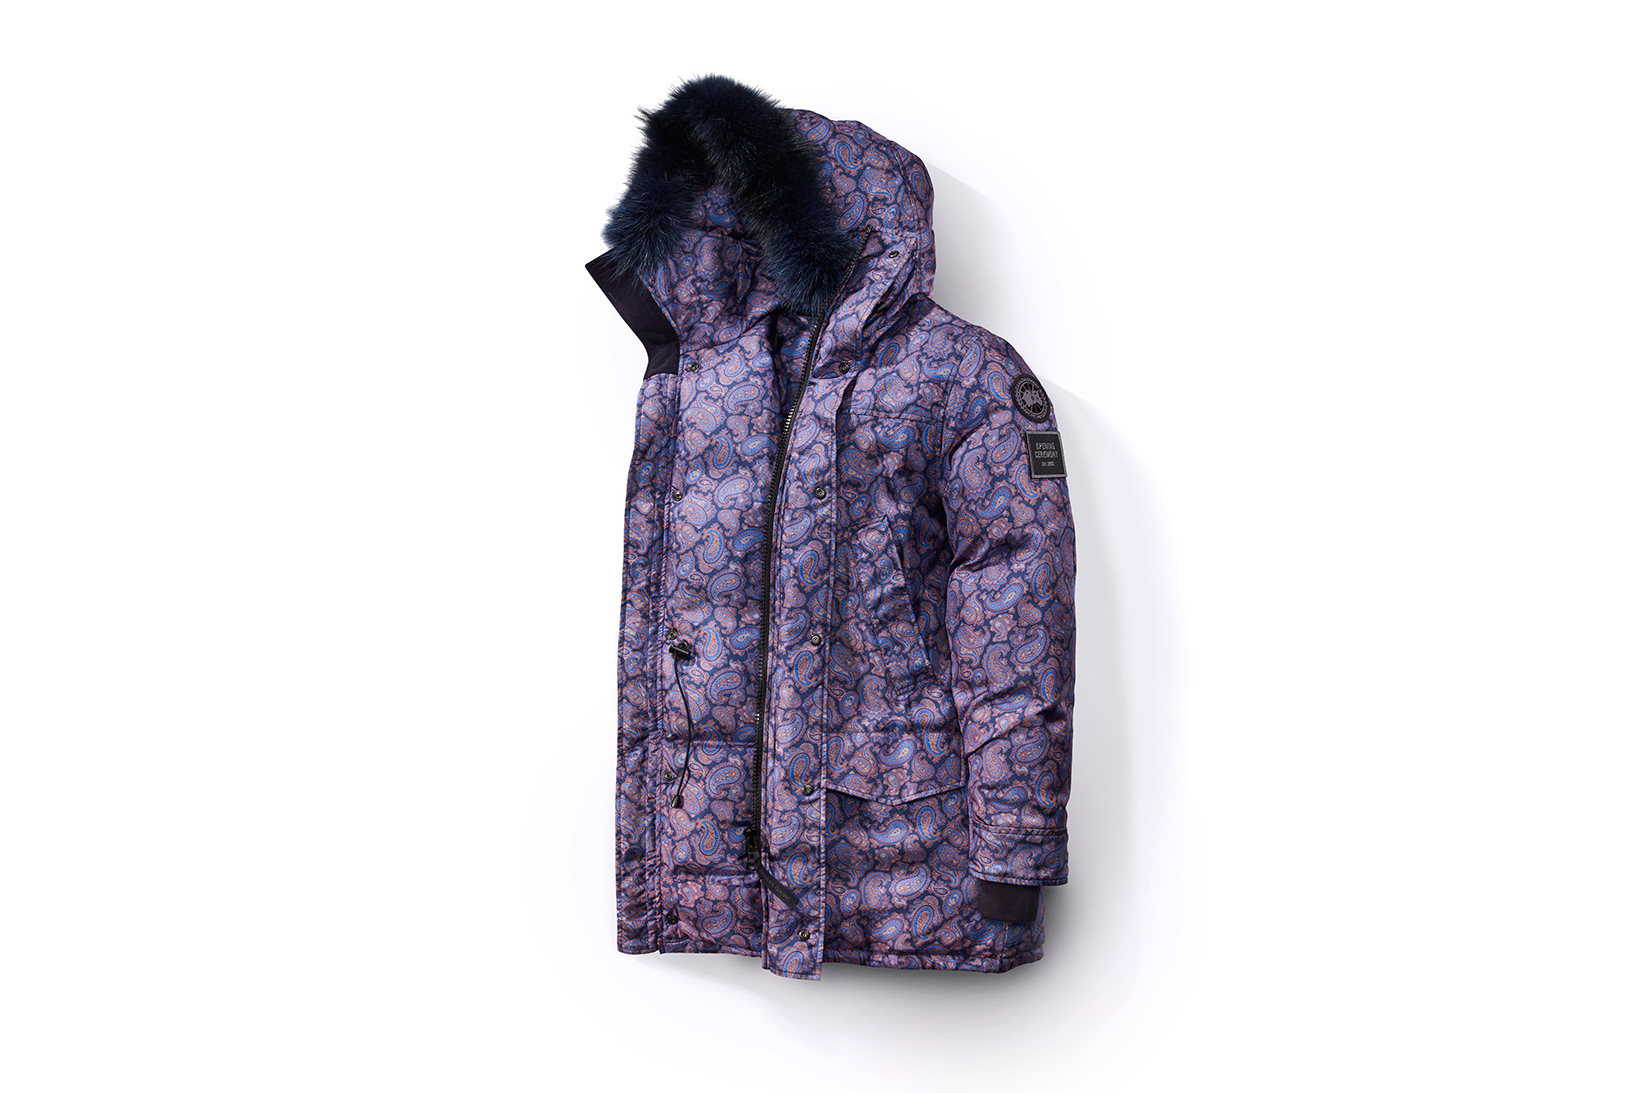 Canada Goose toronto sale cheap - Canada Goose x Opening Ceremony 2016 Paisley Collection   HYPEBEAST